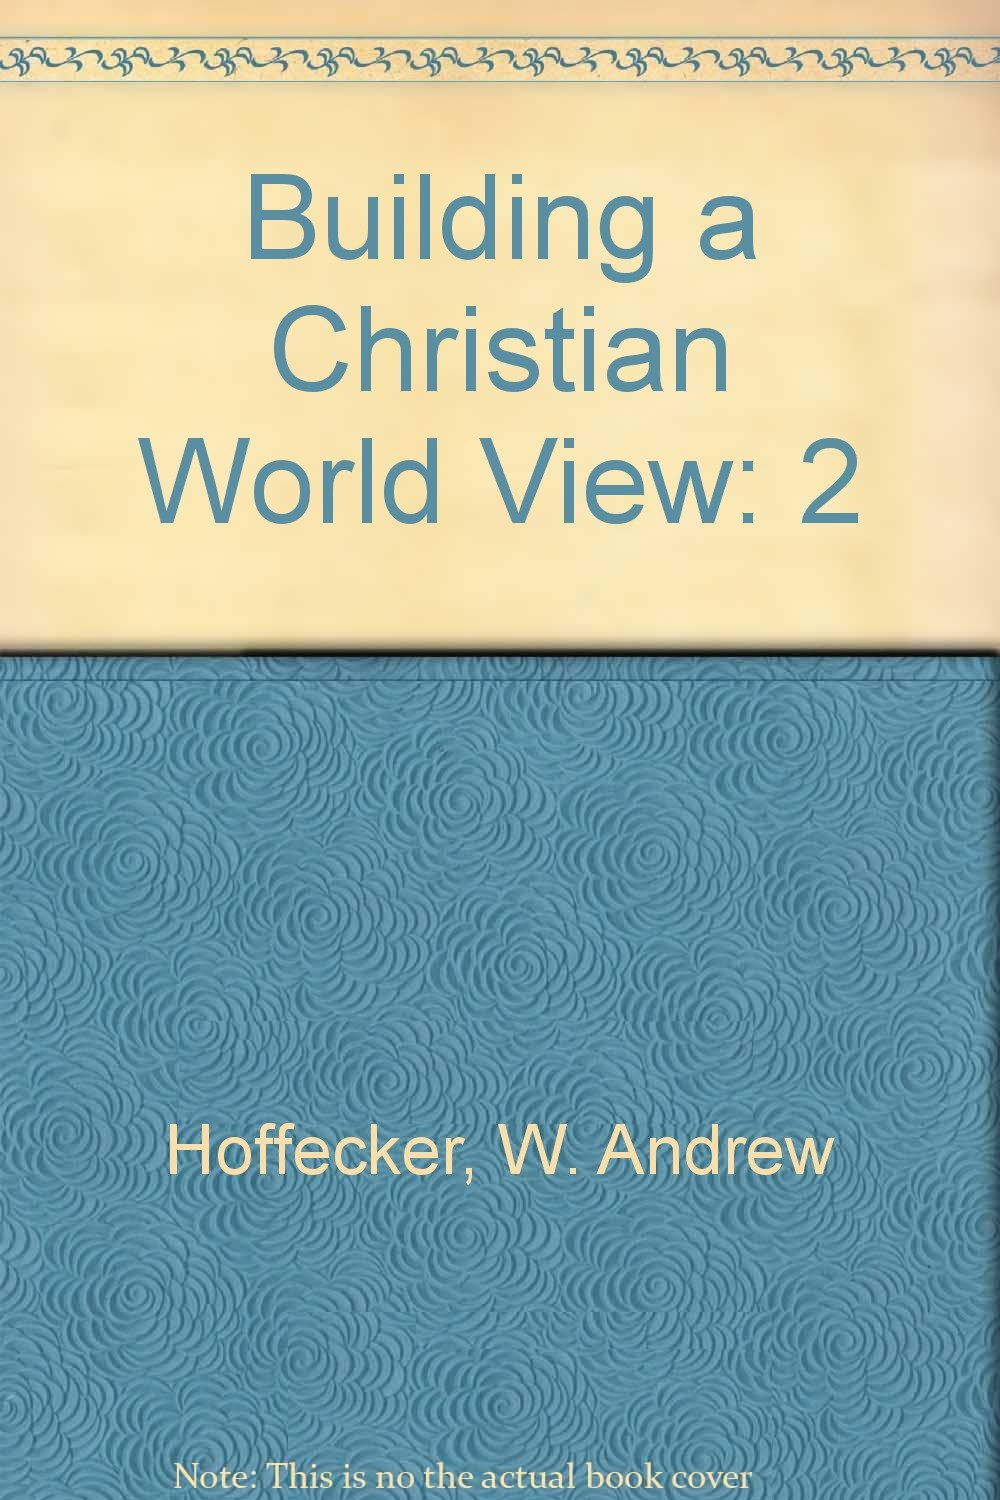 Building a Christian World View, Volume 2: The Universe, Society, and  Ethics: W. Andrew Hoffecker, Gary Scott Smith: 9780875522821: Amazon.com:  Books